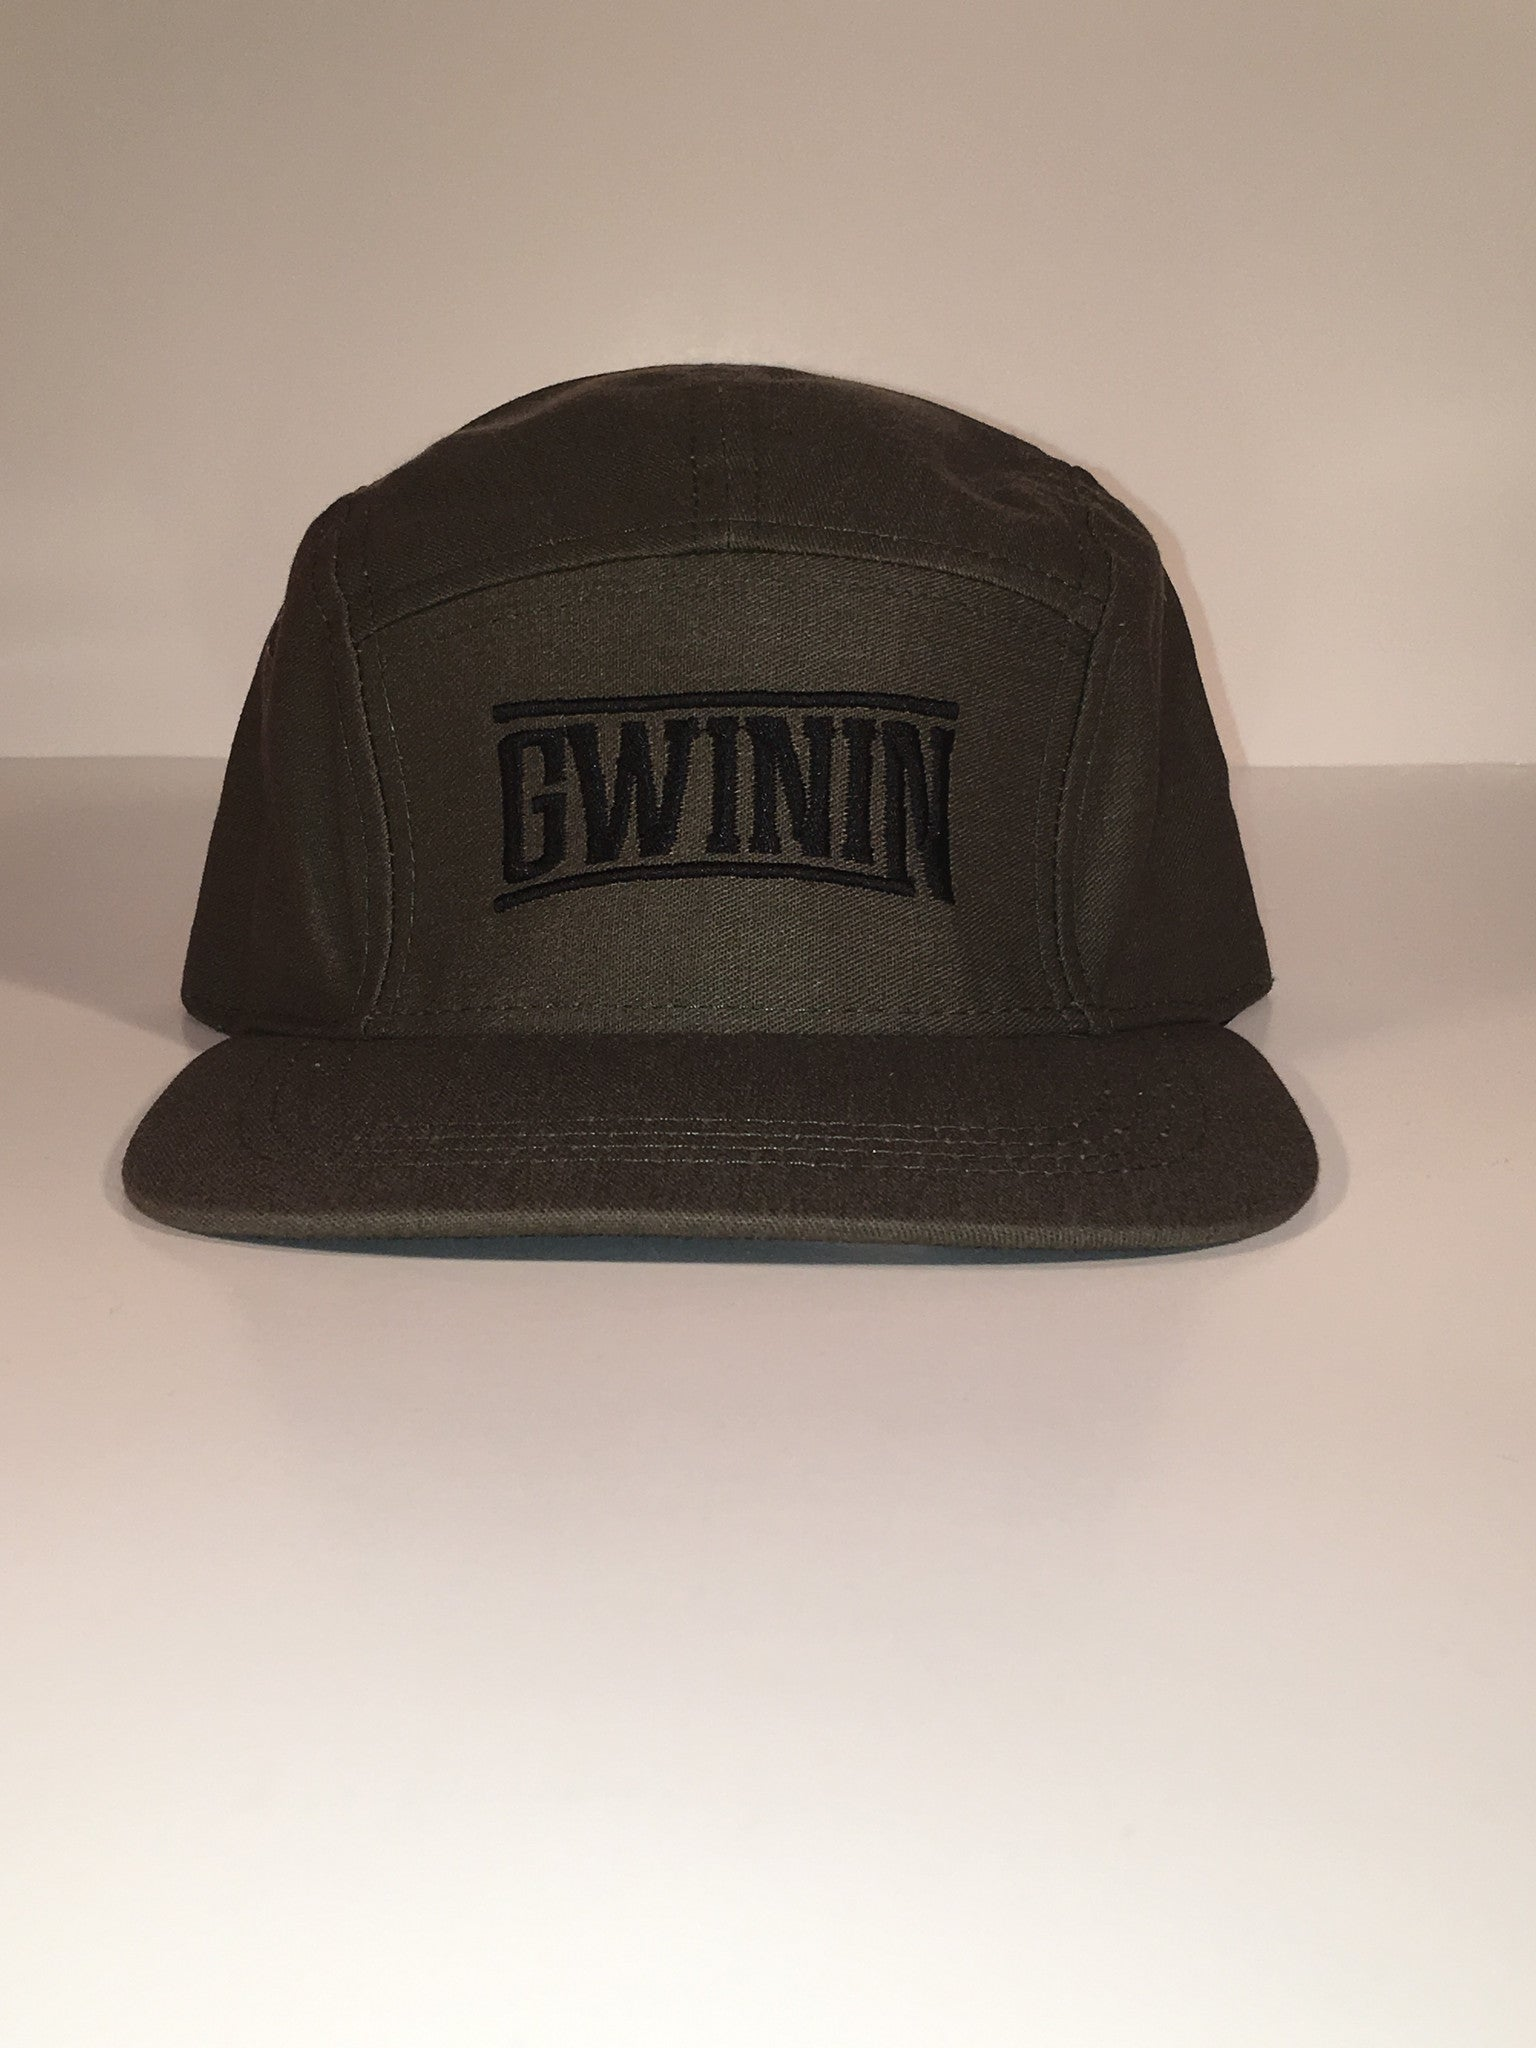 Olive Green 5 Panel Gwinin Snapback